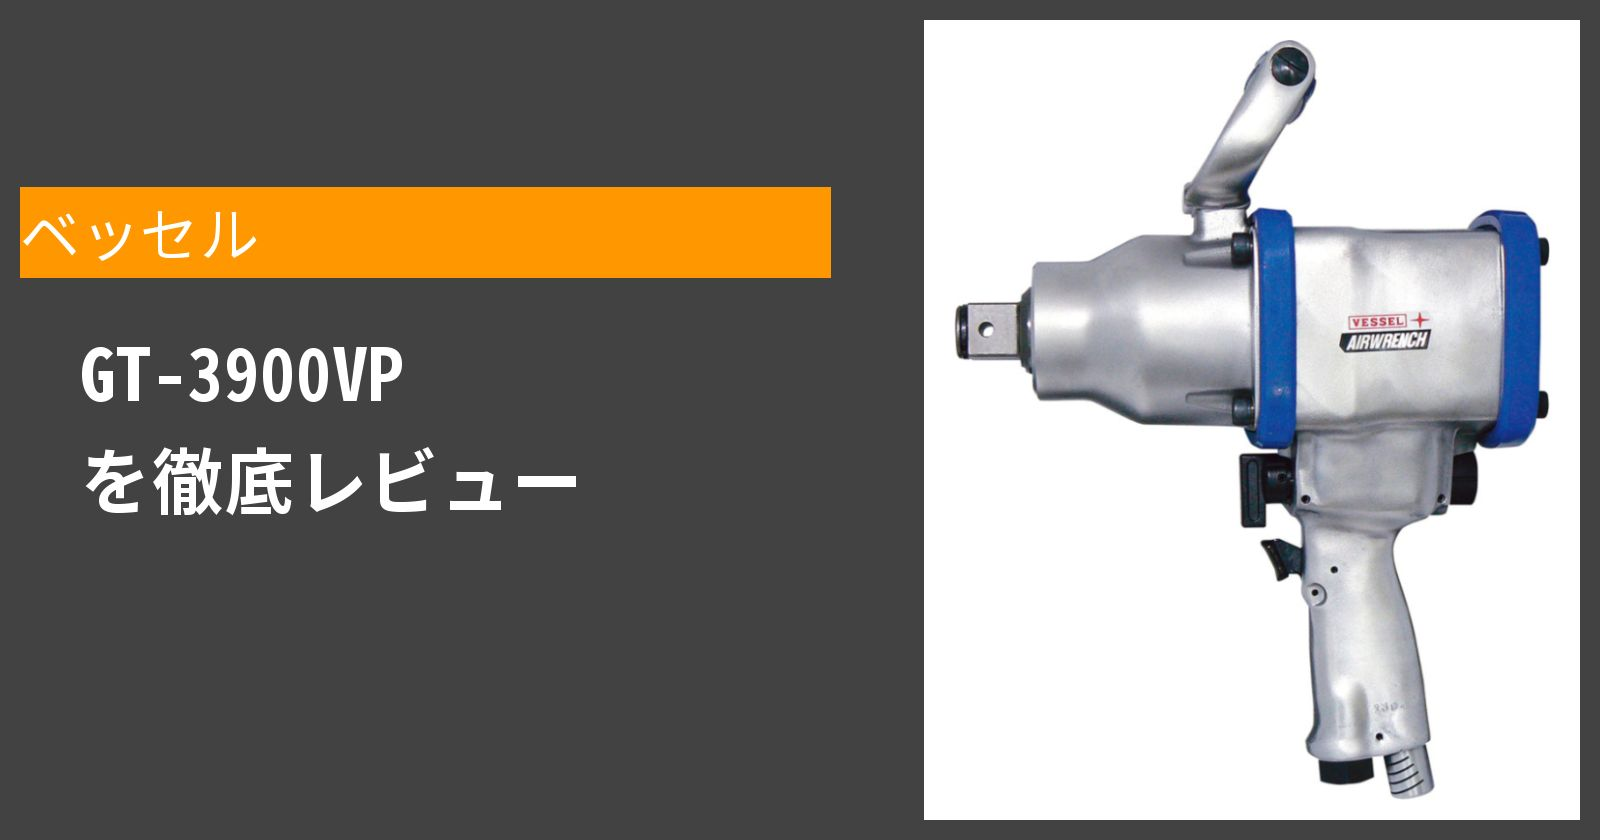 GT-3900VPを徹底評価